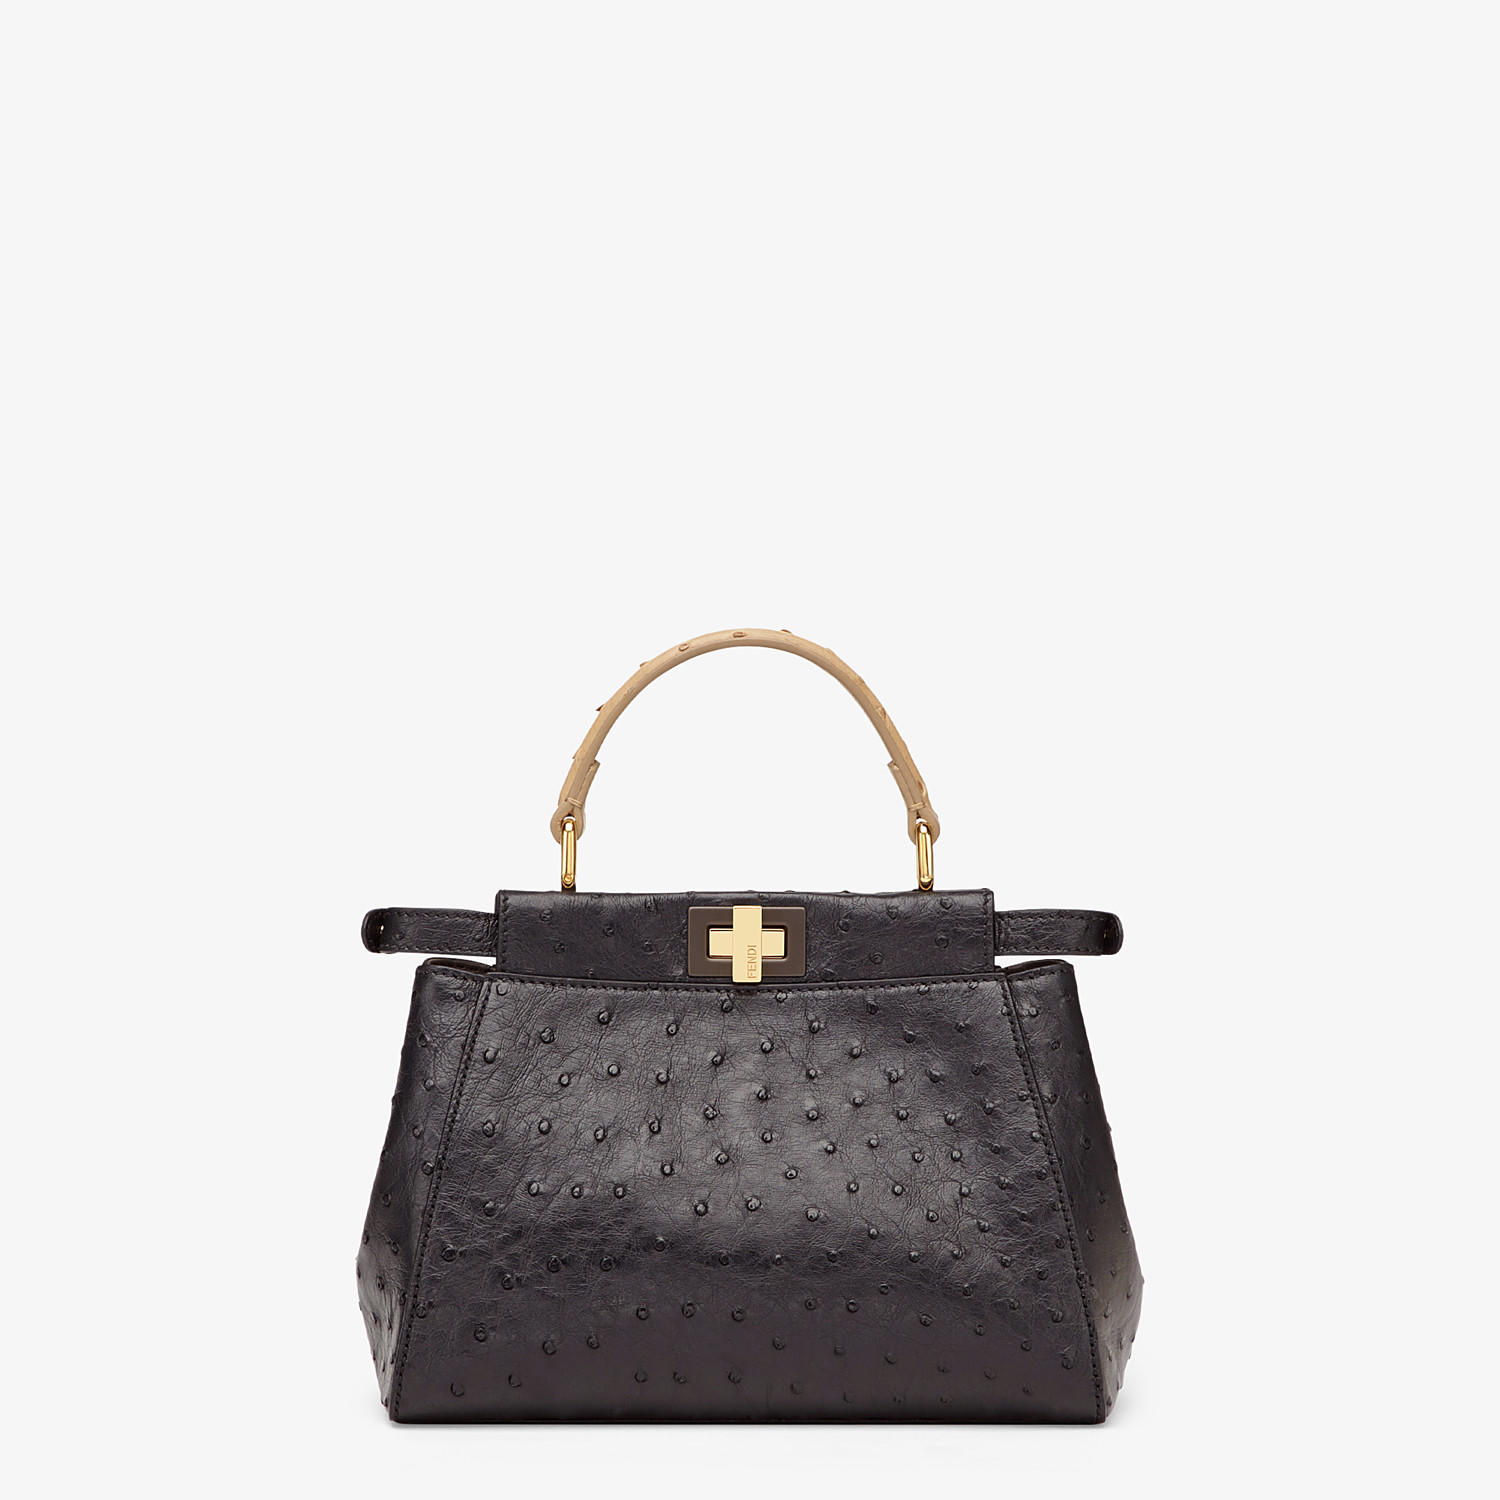 FENDI PEEKABOO ICONIC MINI - Black ostrich leather bag - view 3 detail